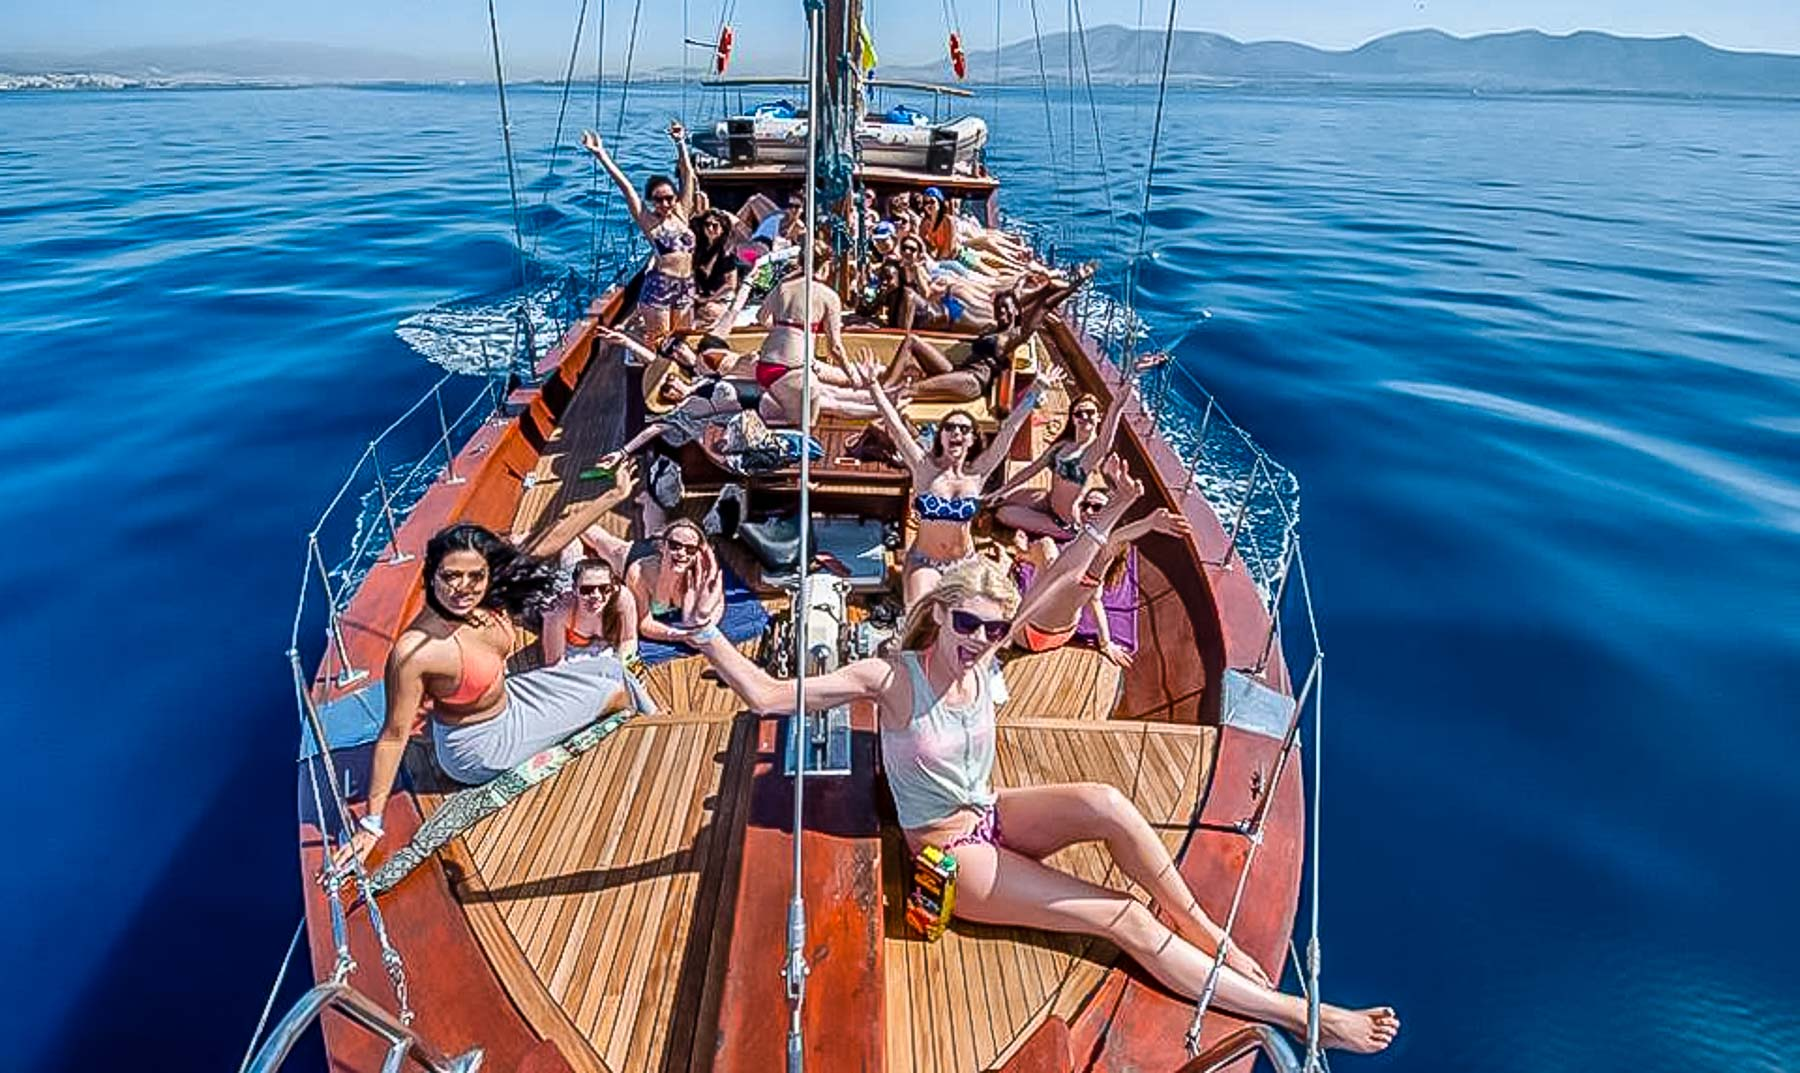 Sailing in the Saronic Gulf